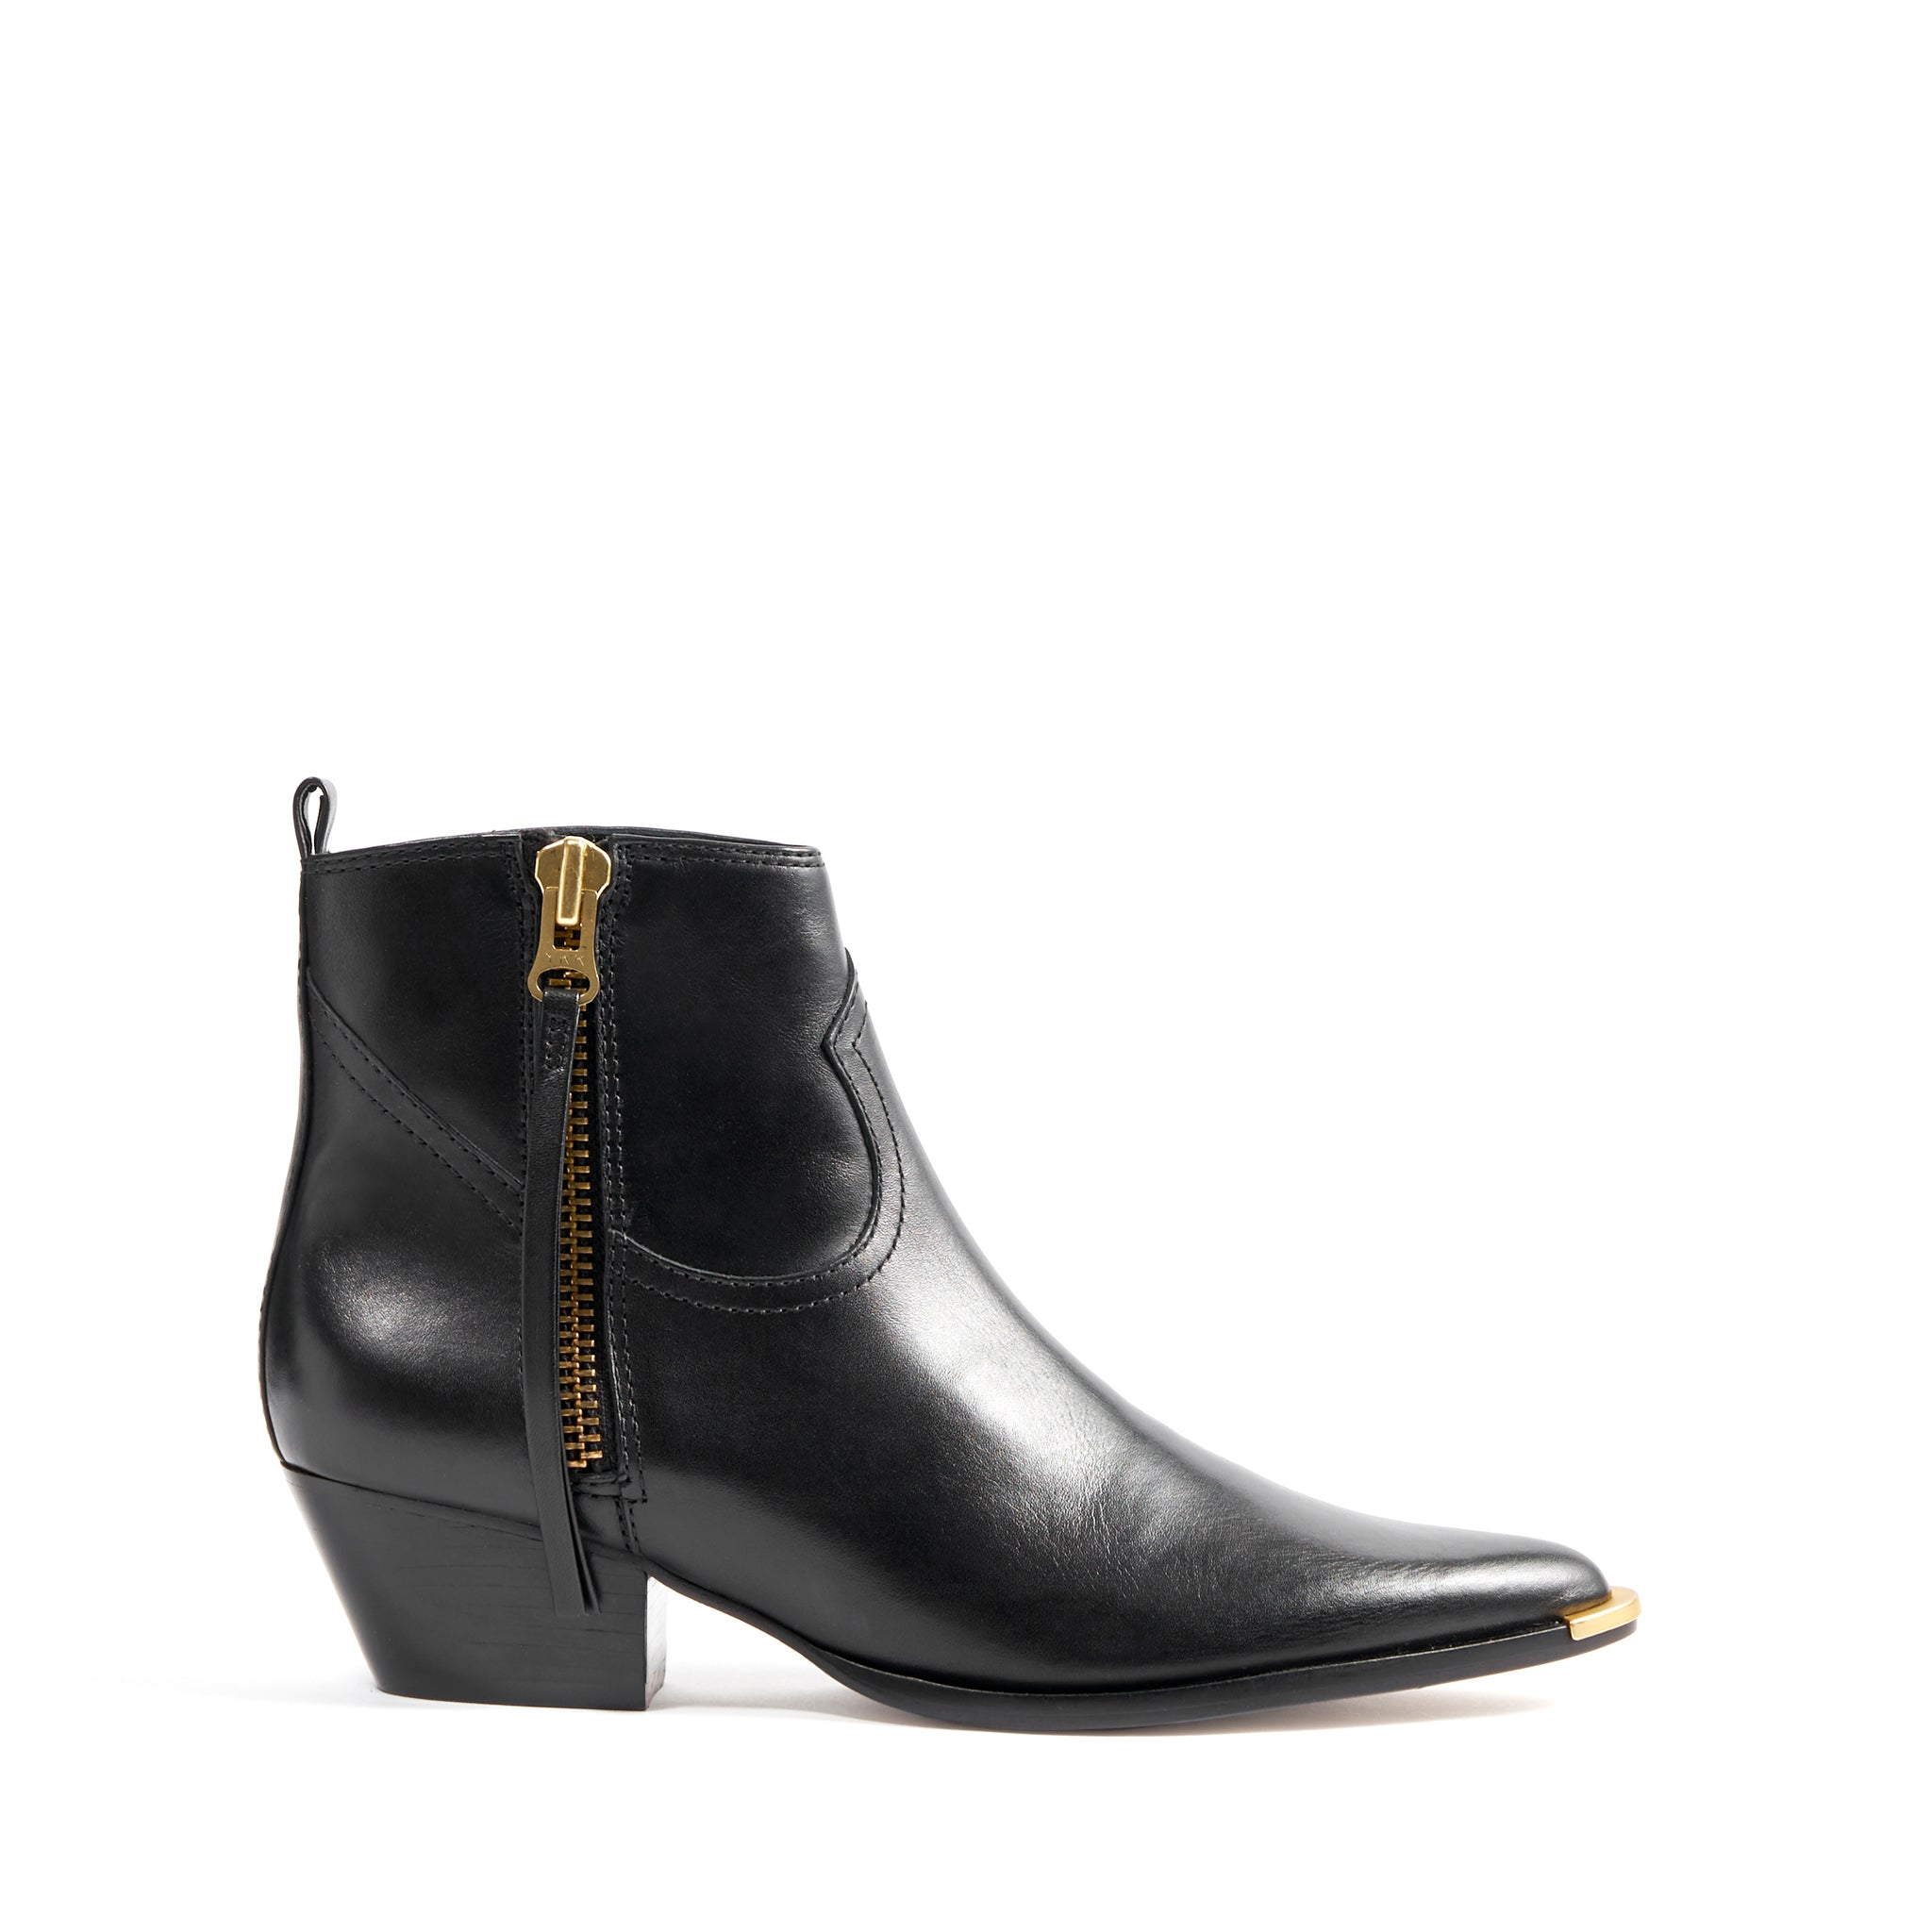 Traci Booties Black Leather